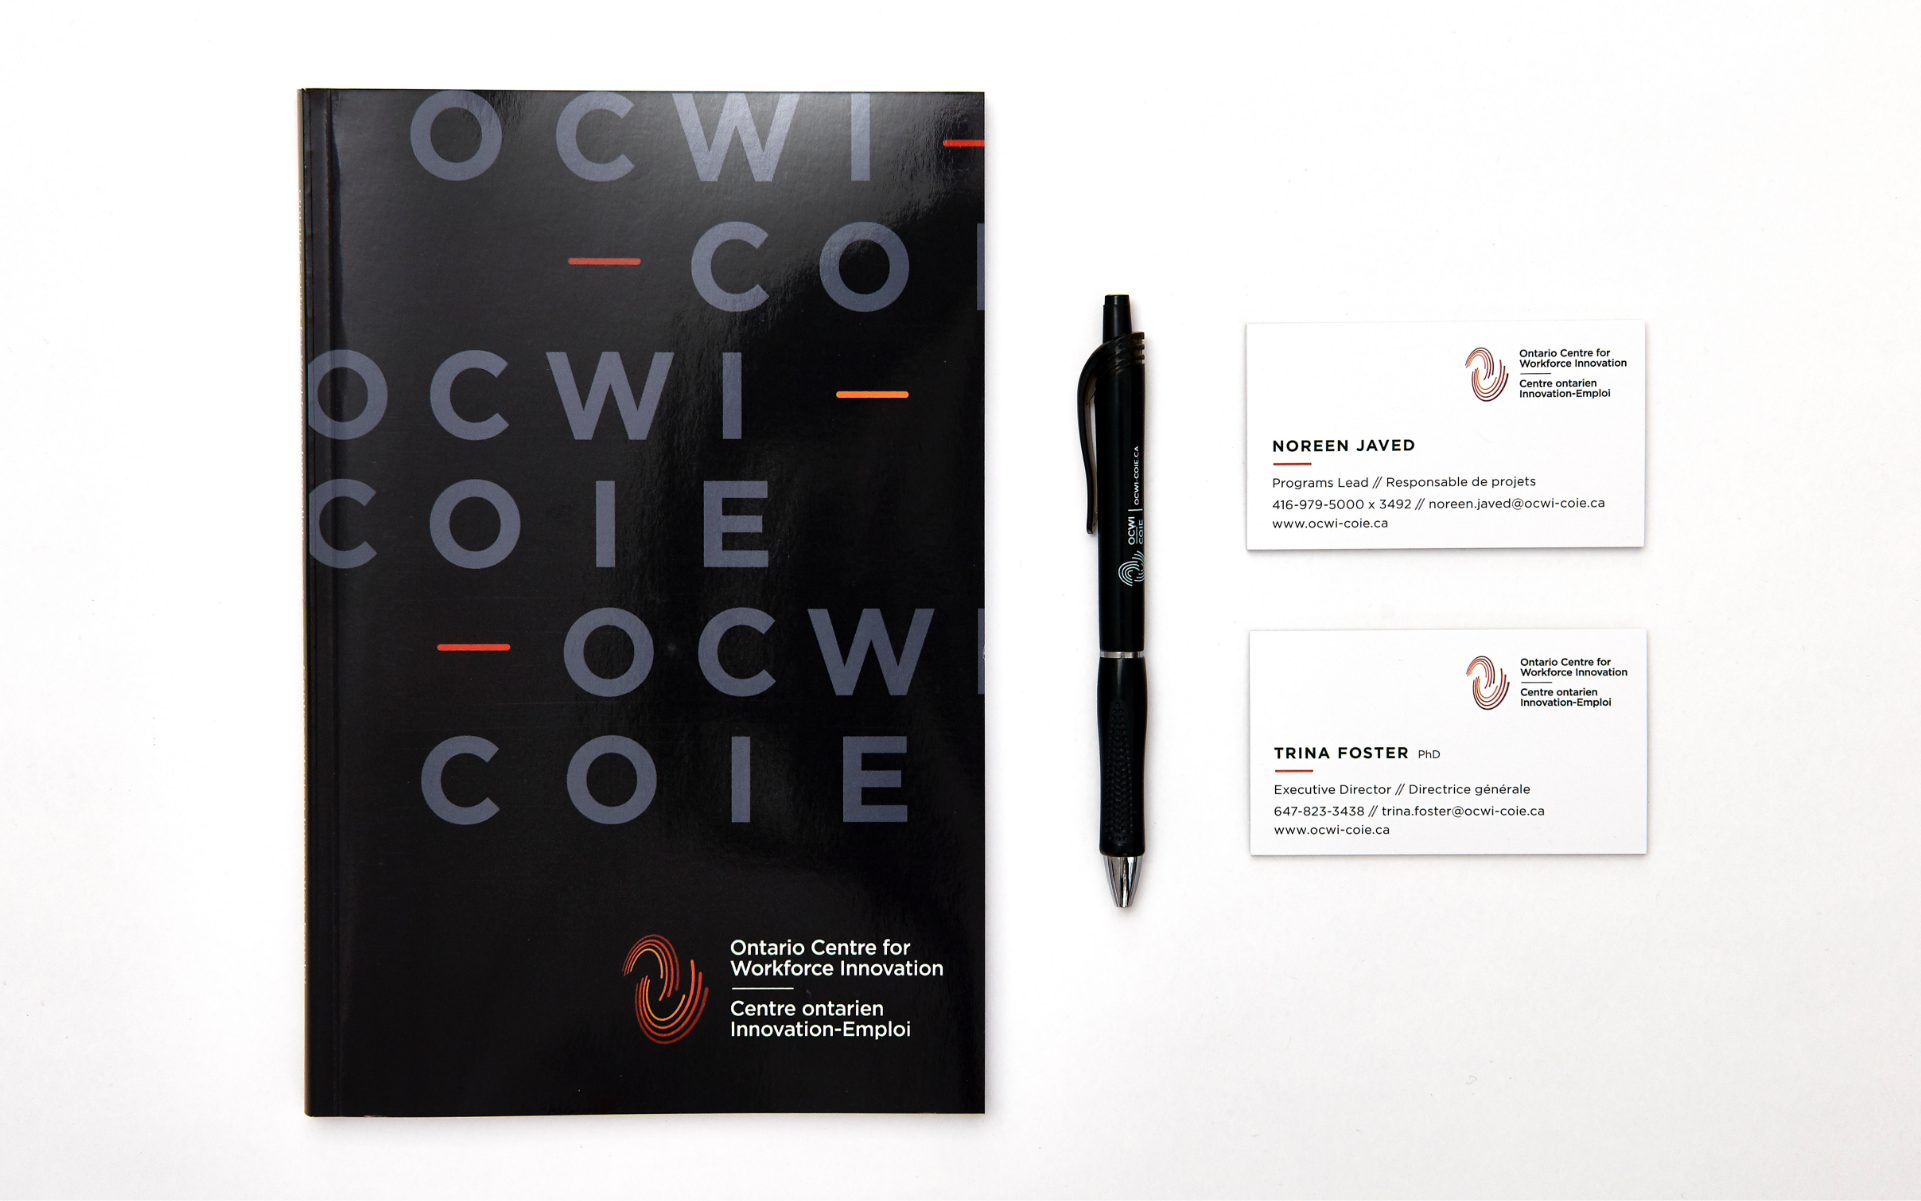 OCWI - Ontario Centre for Workforce Innovation - Stationery Design